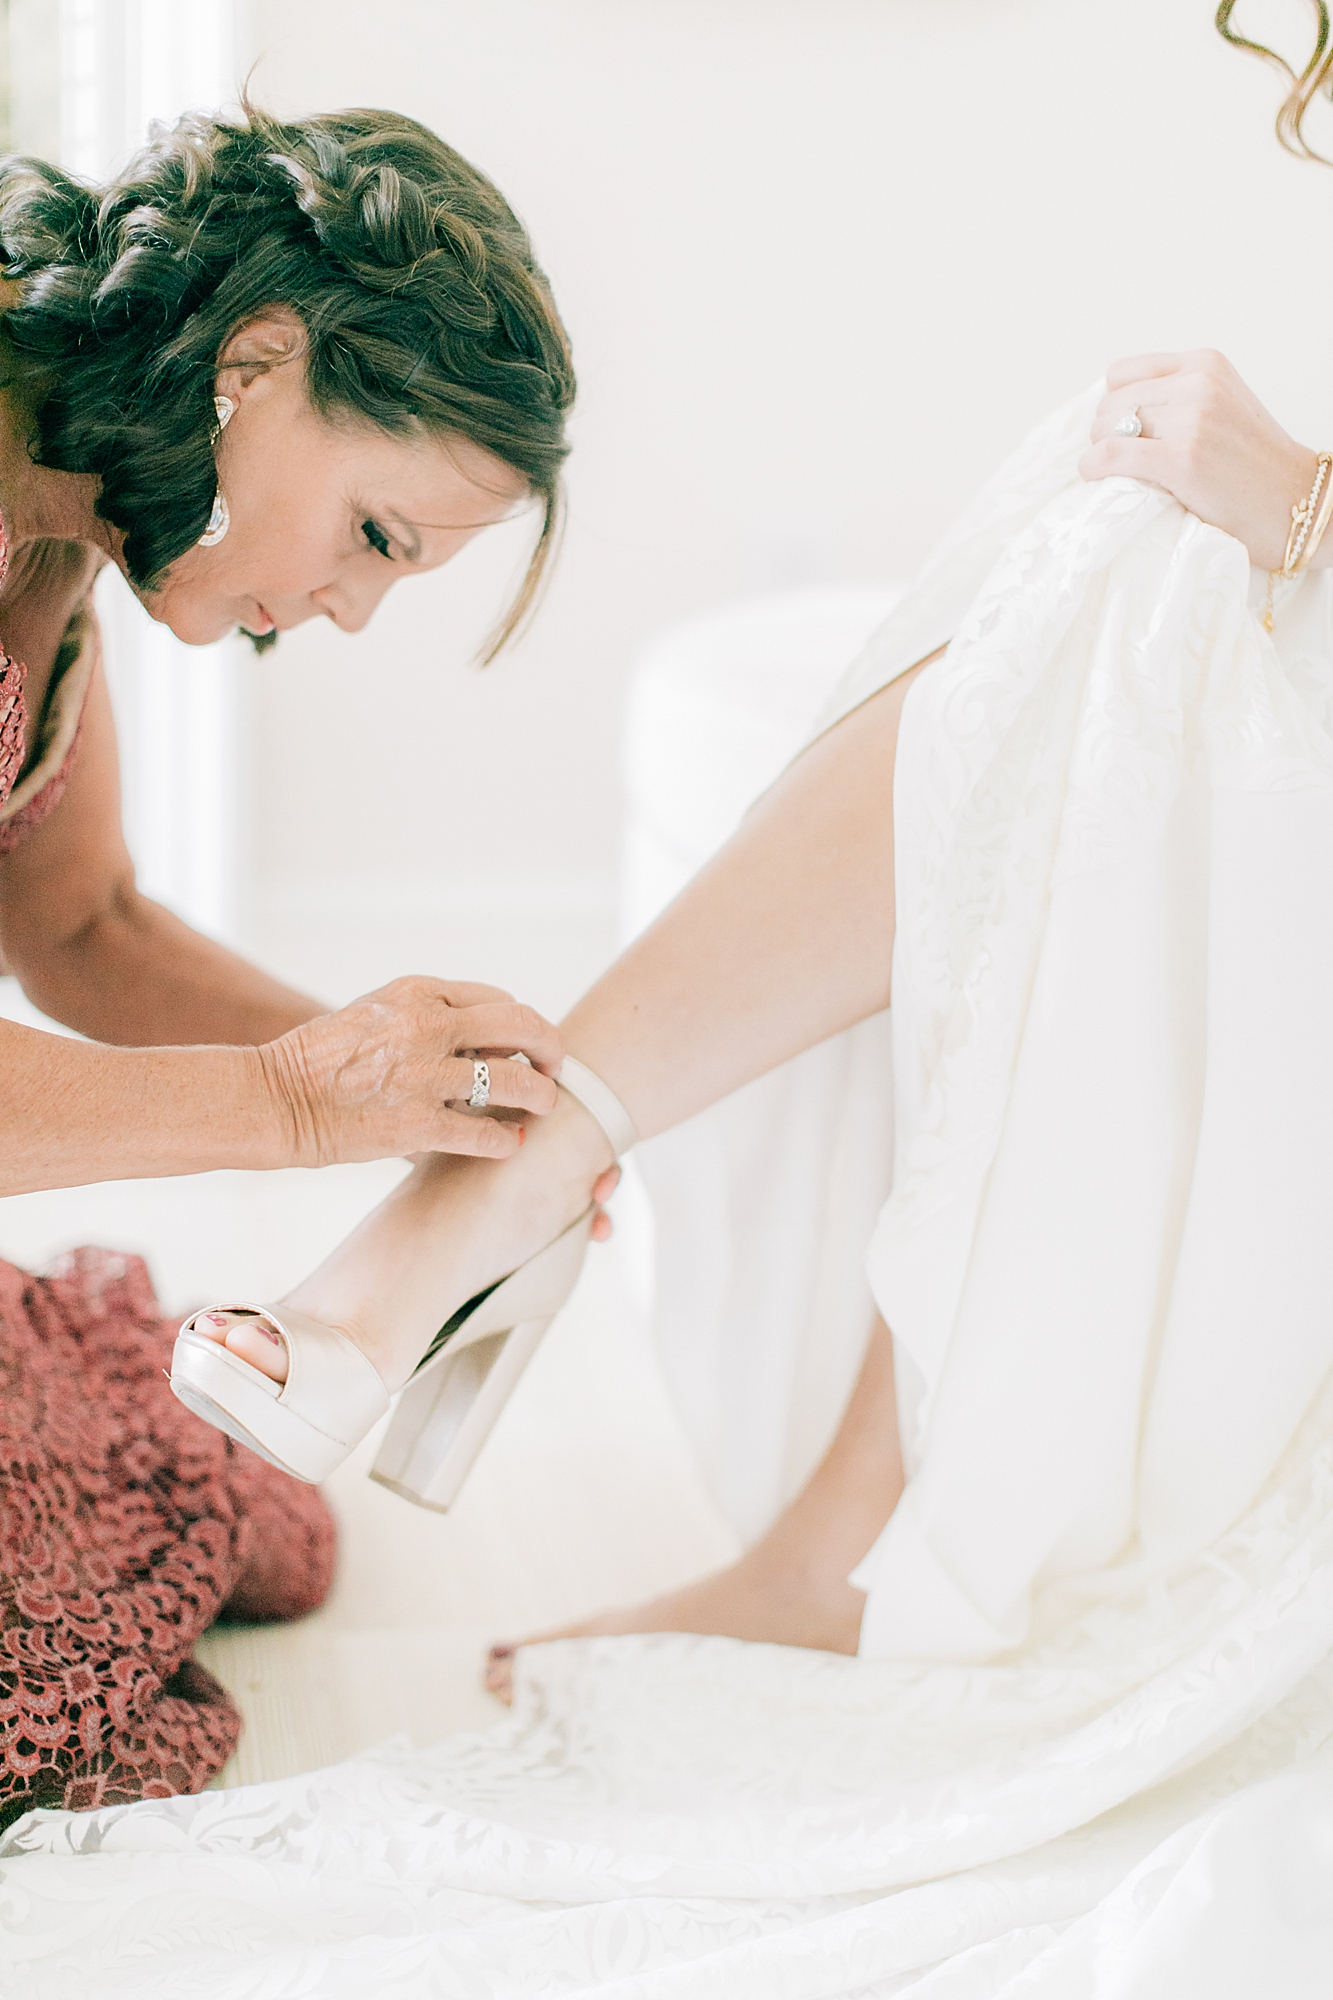 Linwood Country Club Film Wedding Photography by Magdalena Studios South Jersey Wedding Photographer 8